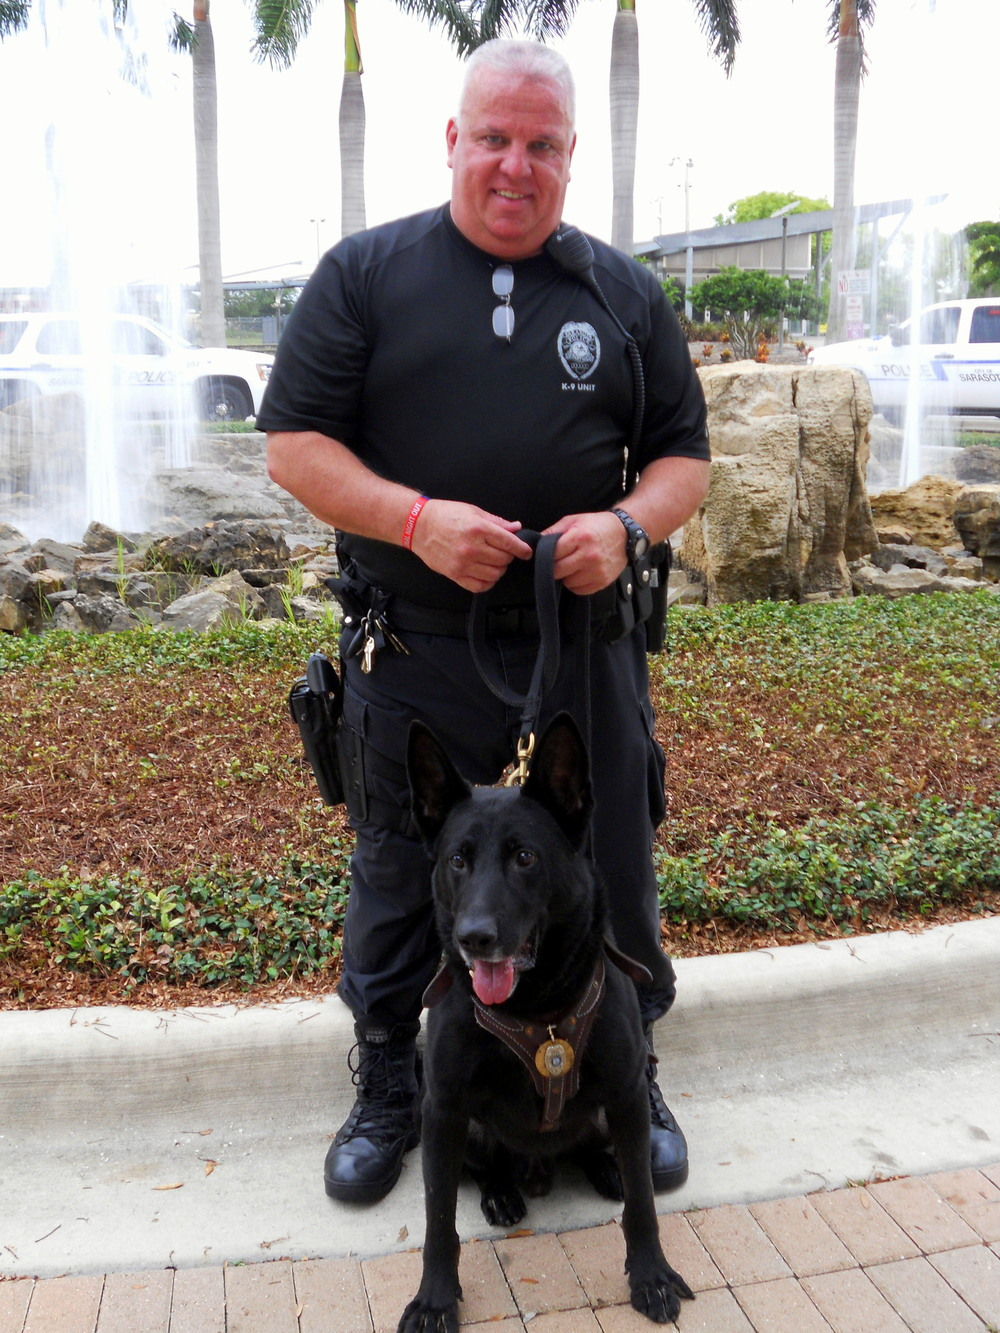 Sergeant Michael McHale and K9 Nero during National Night Out in August 2013